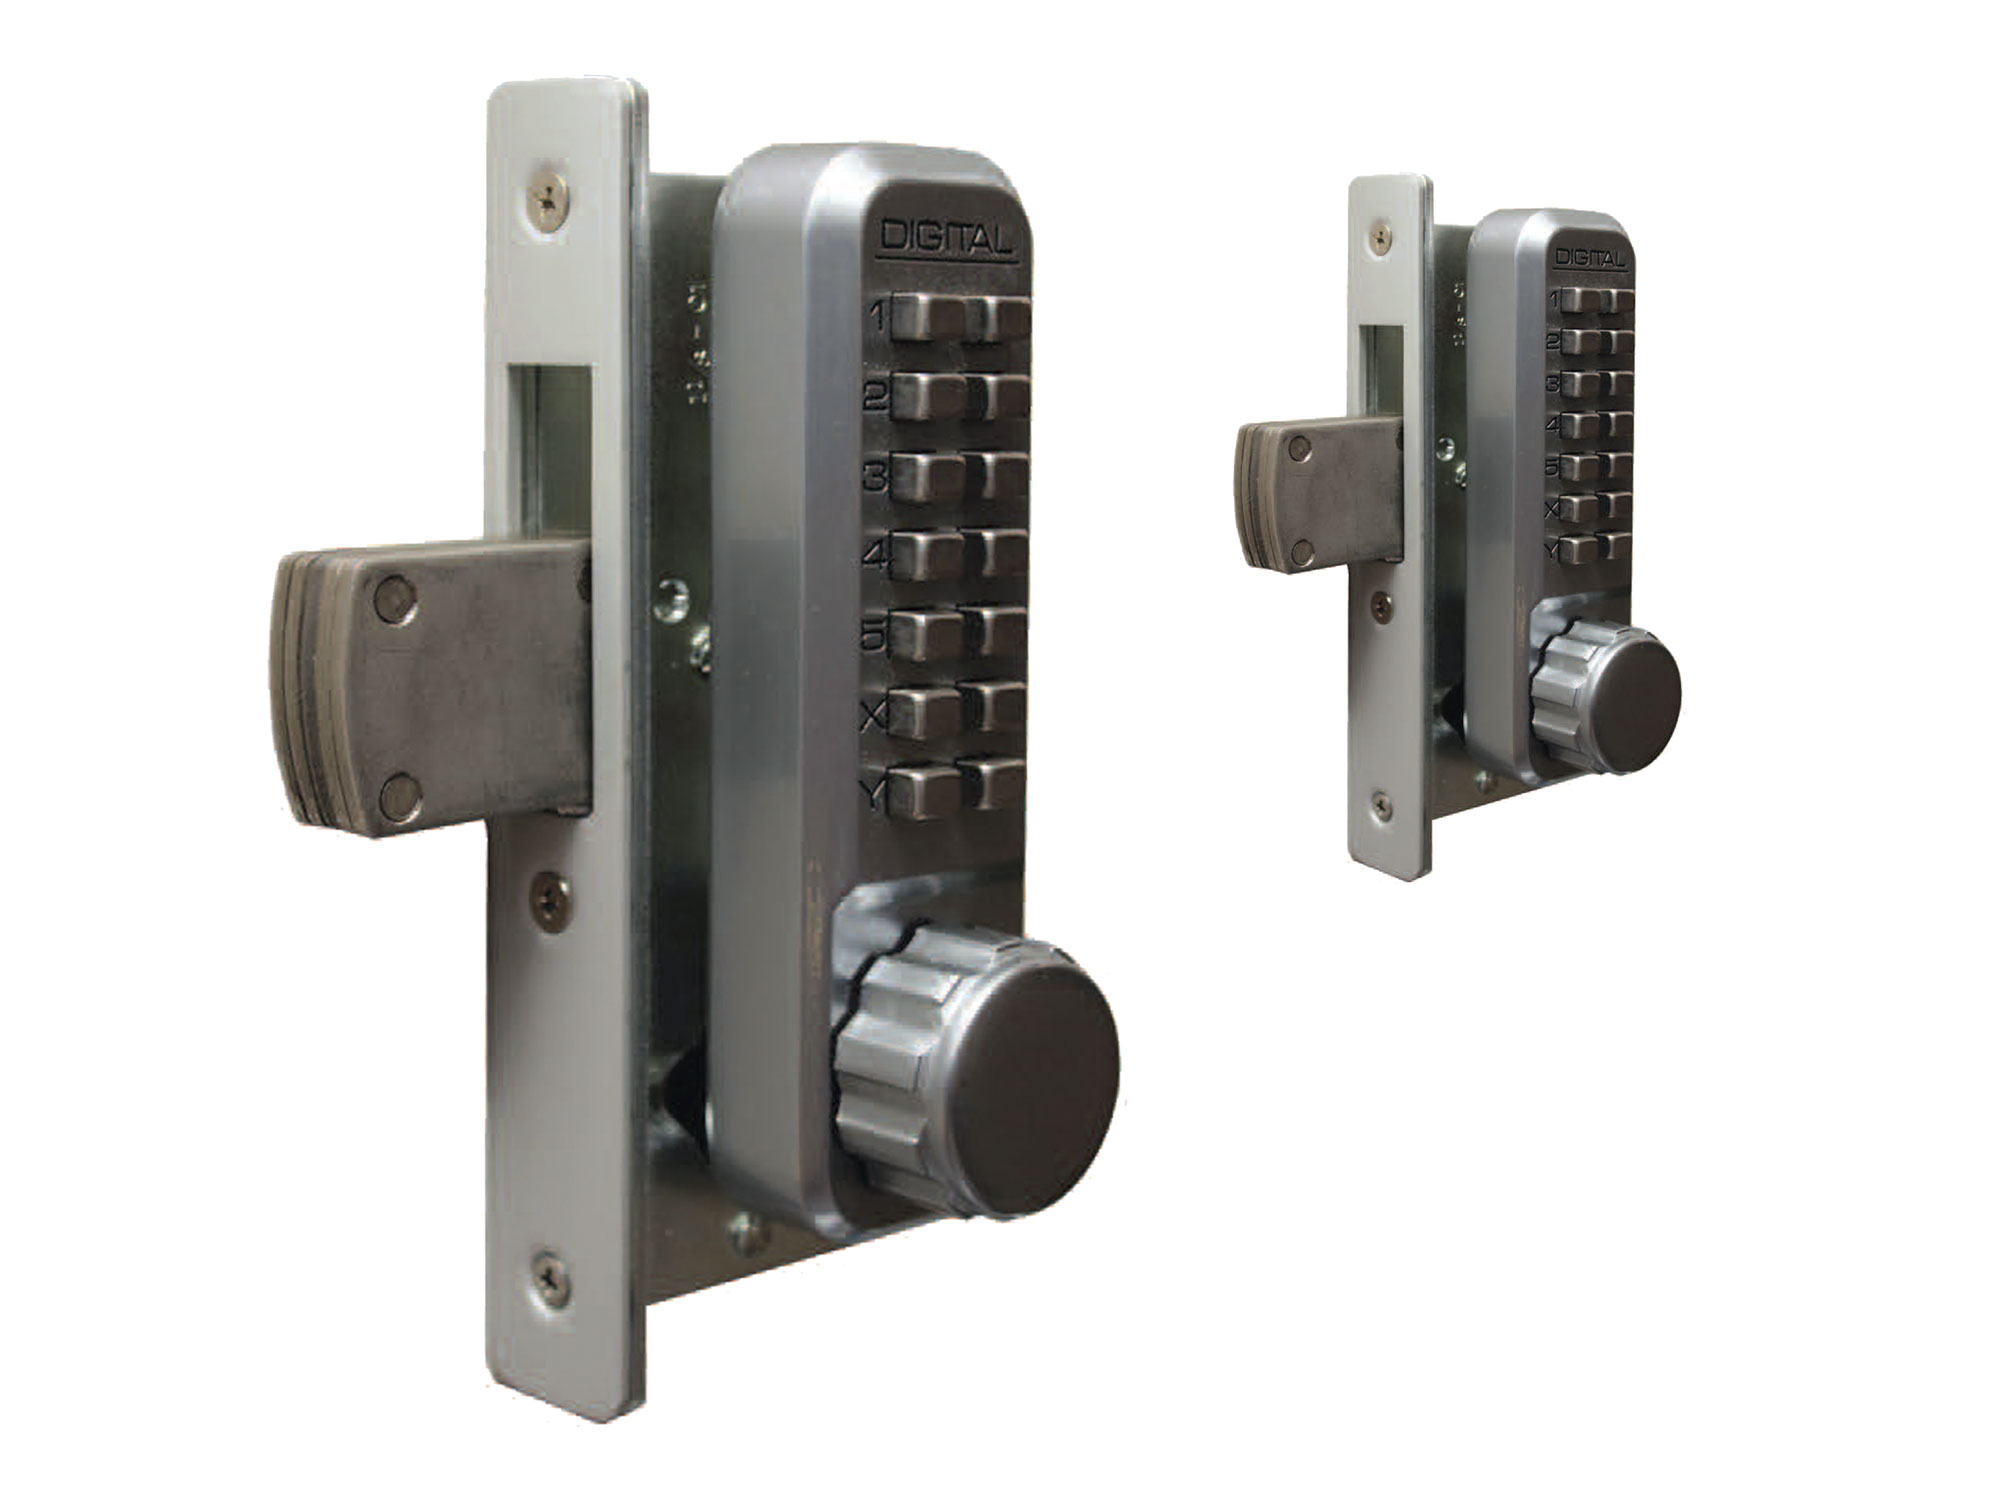 Keyless Entry Locks Keypad Pushbutton Combination For 10 Code Electric Lock Electronic Circuits Lockey 2900dc Narrow Stile Knob Handle Double Deadbolt